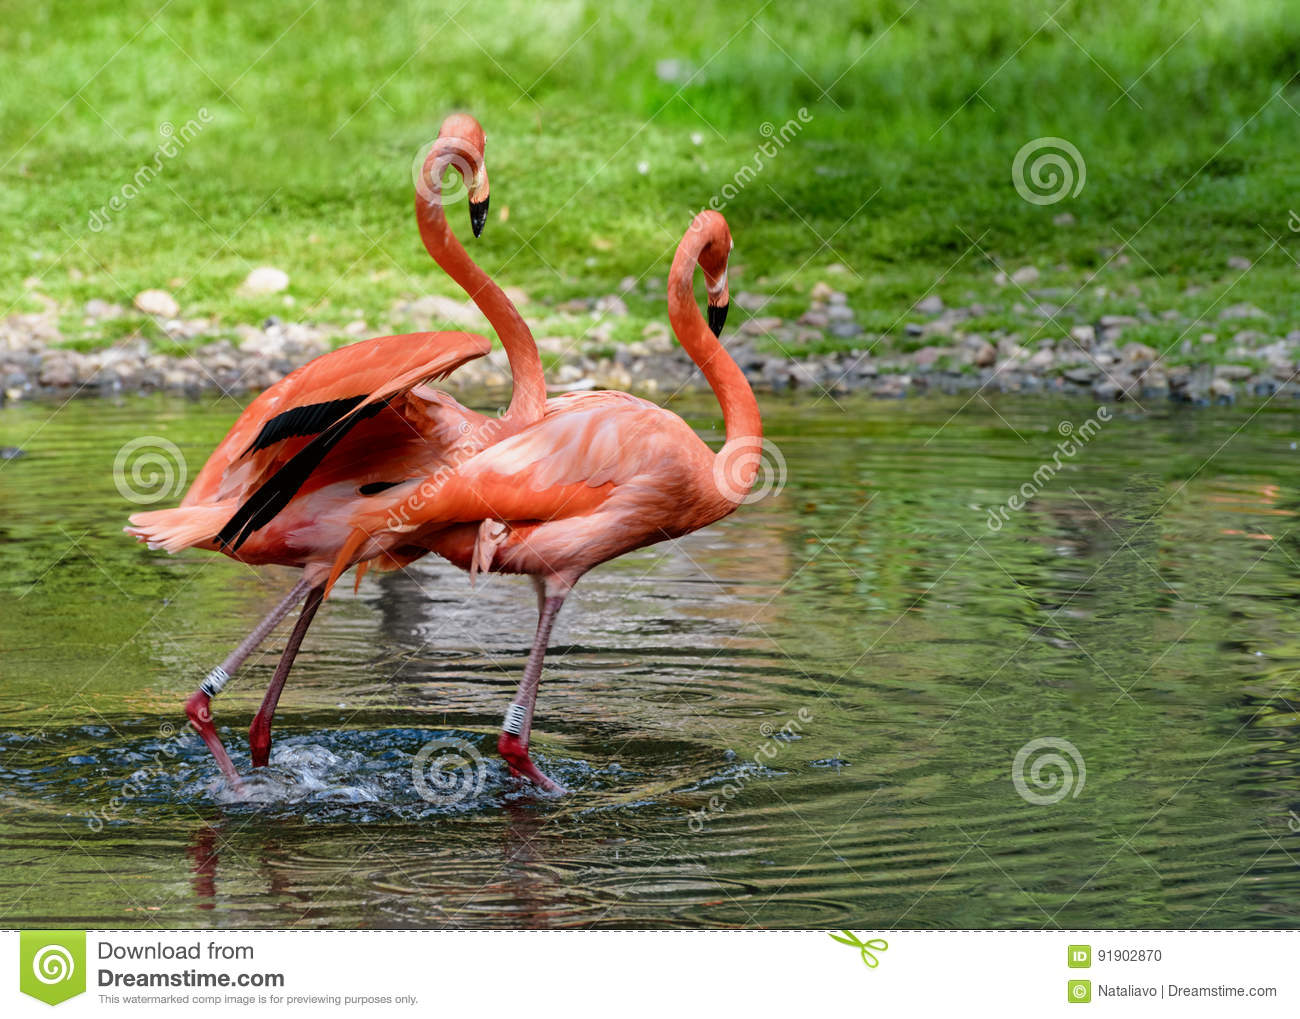 Pair of flamingos stand in a pond. American flamingo. Lanscape for poster